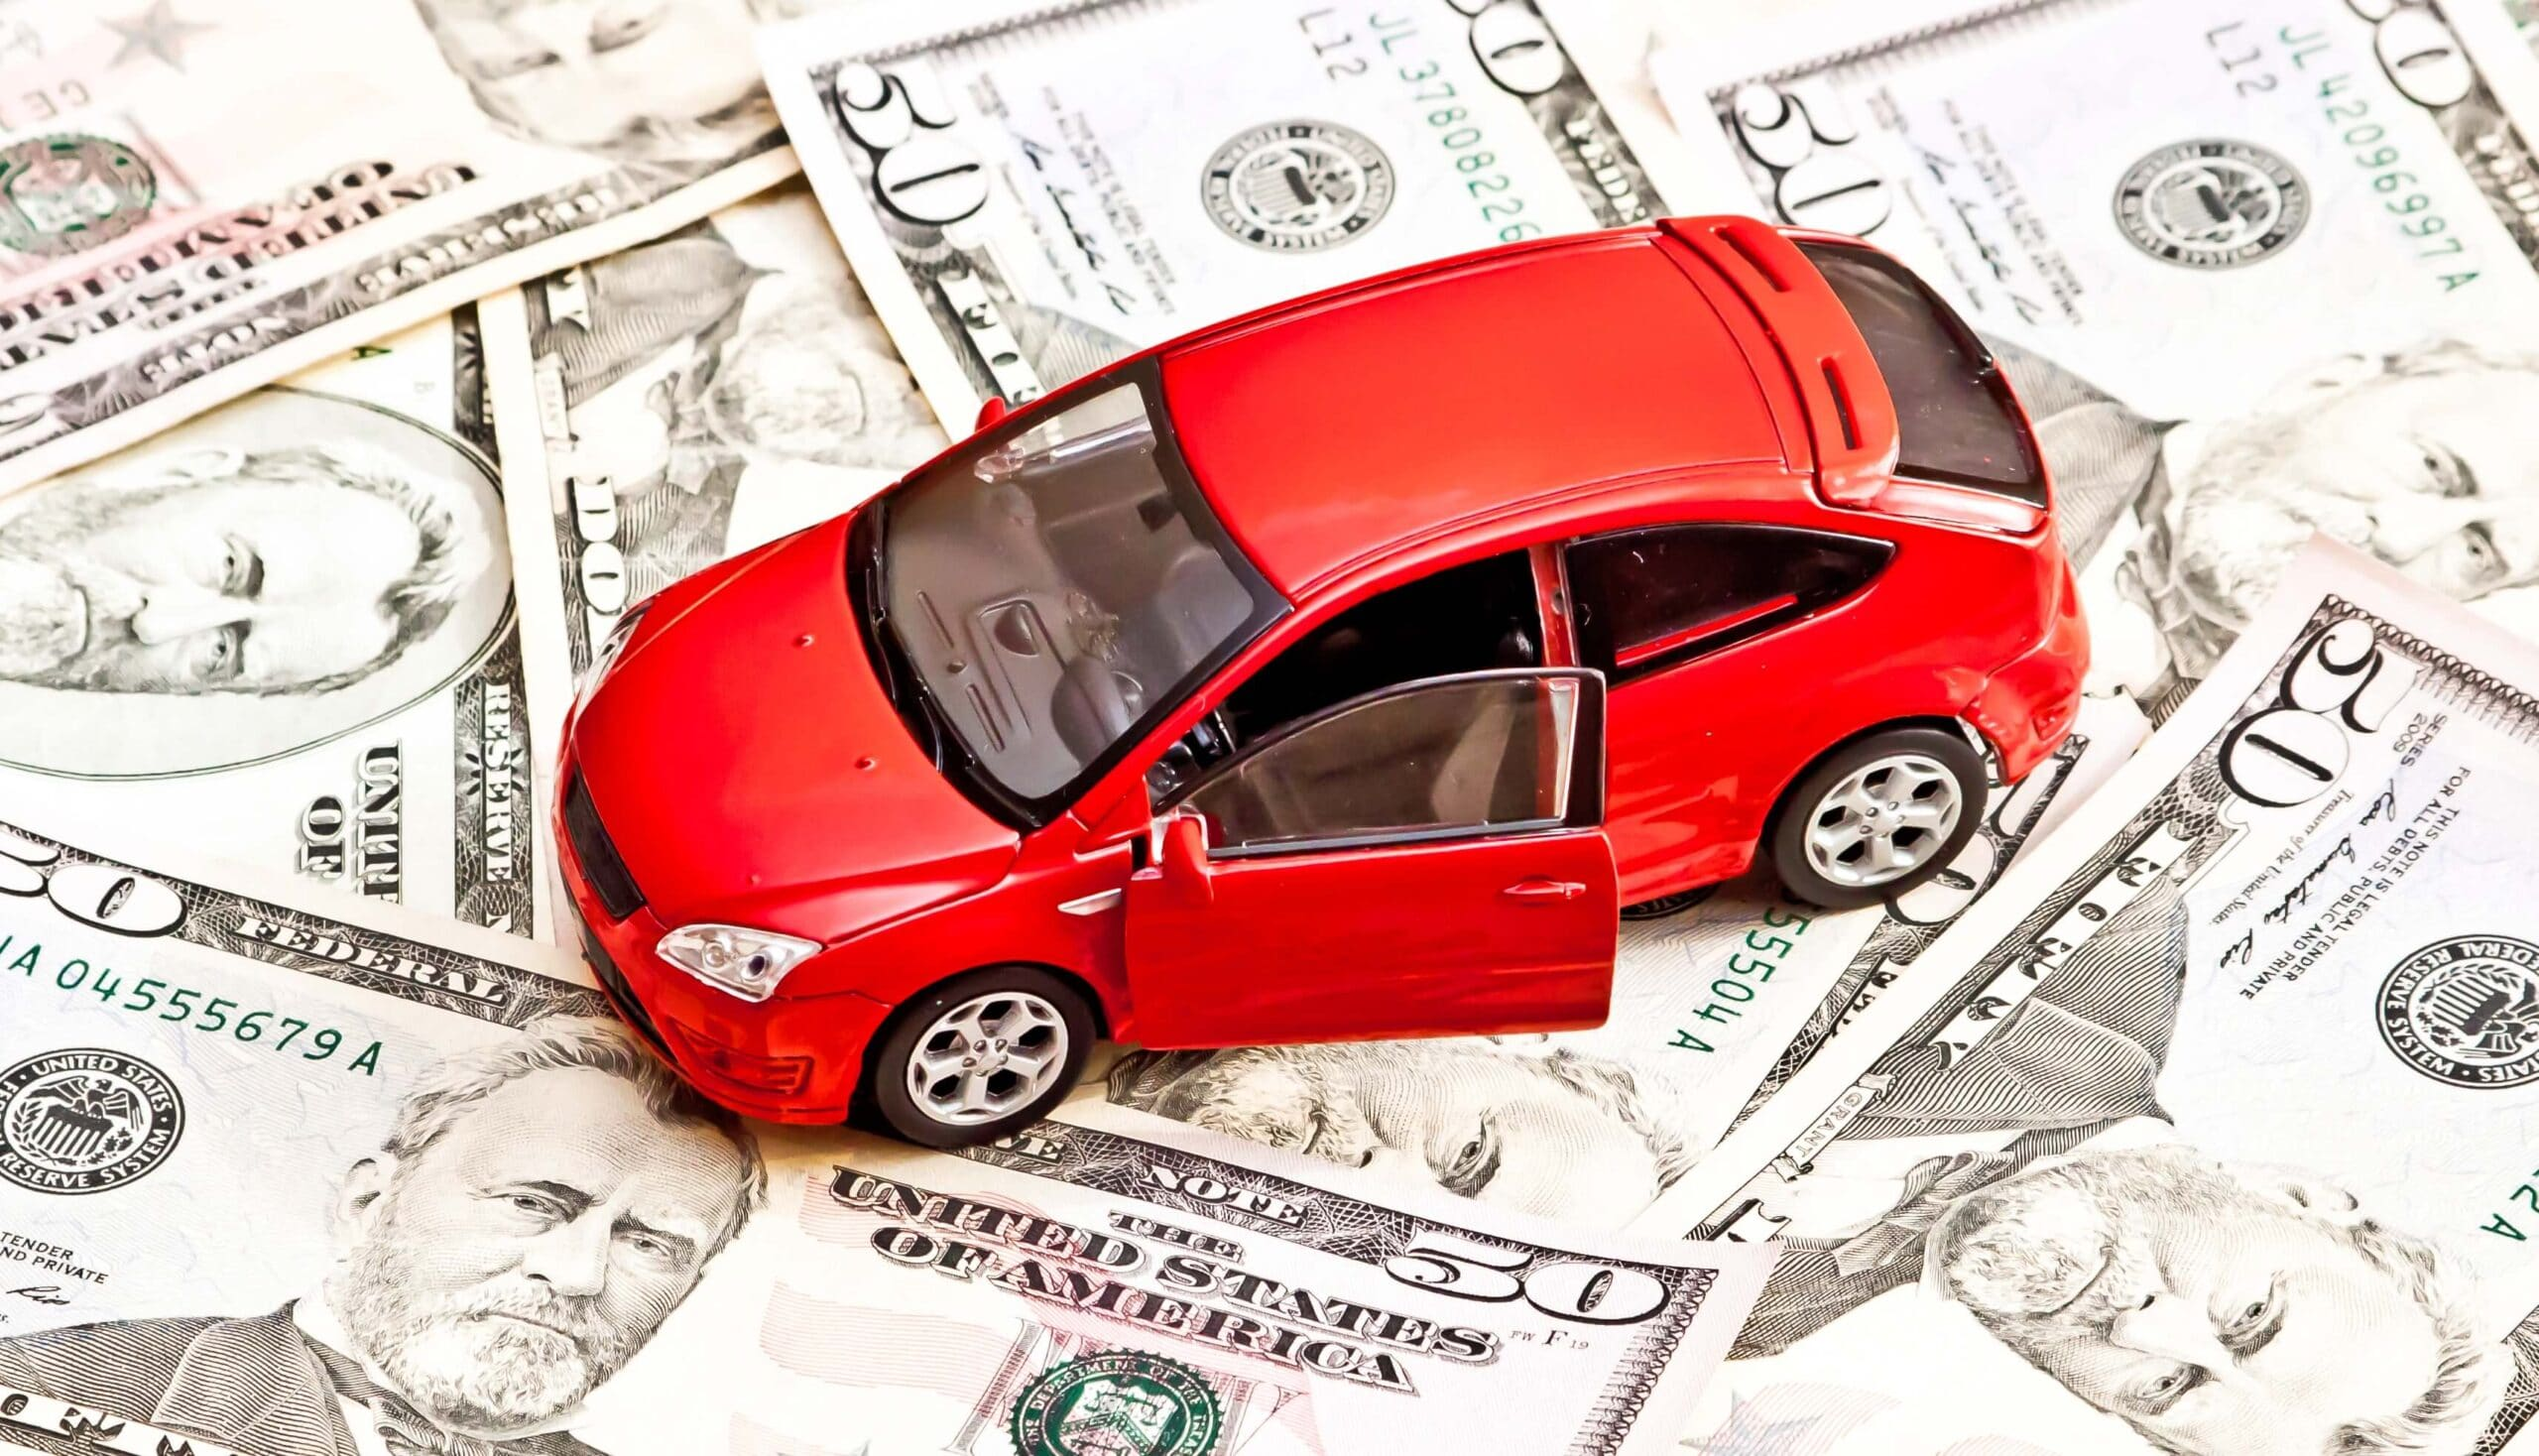 Selling Your Used Car For Cash? Avoid These Mistakes